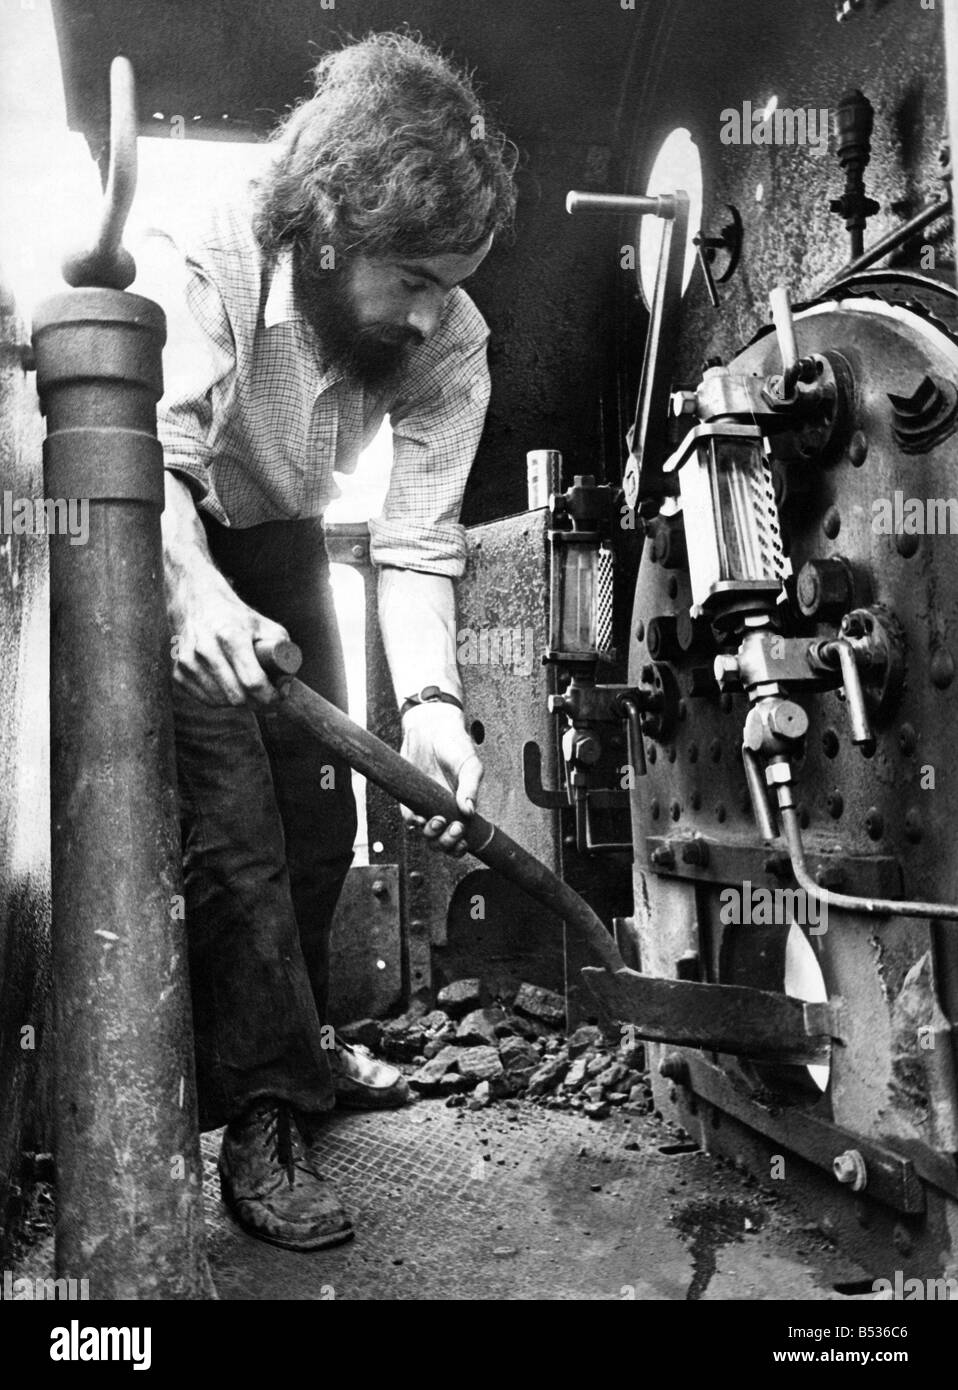 Fuel for the boiler of an old steam engine is shoveled on by Peter Weightman one of the enthusiasts who has helped - Stock Image